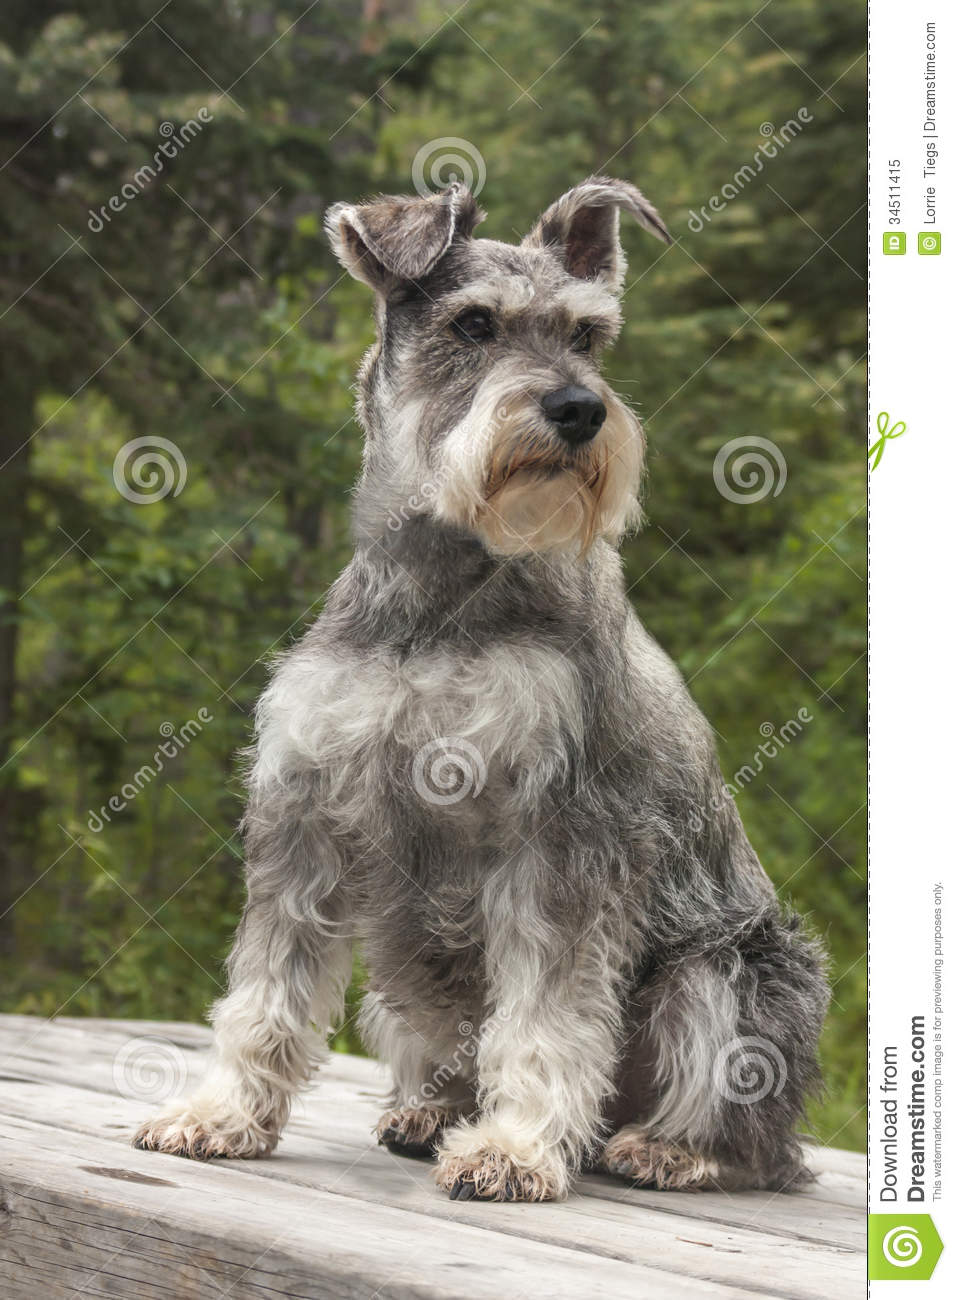 ... Schnauzer Dog Sits On Table Royalty Free Stock Photo - Image: 34511415